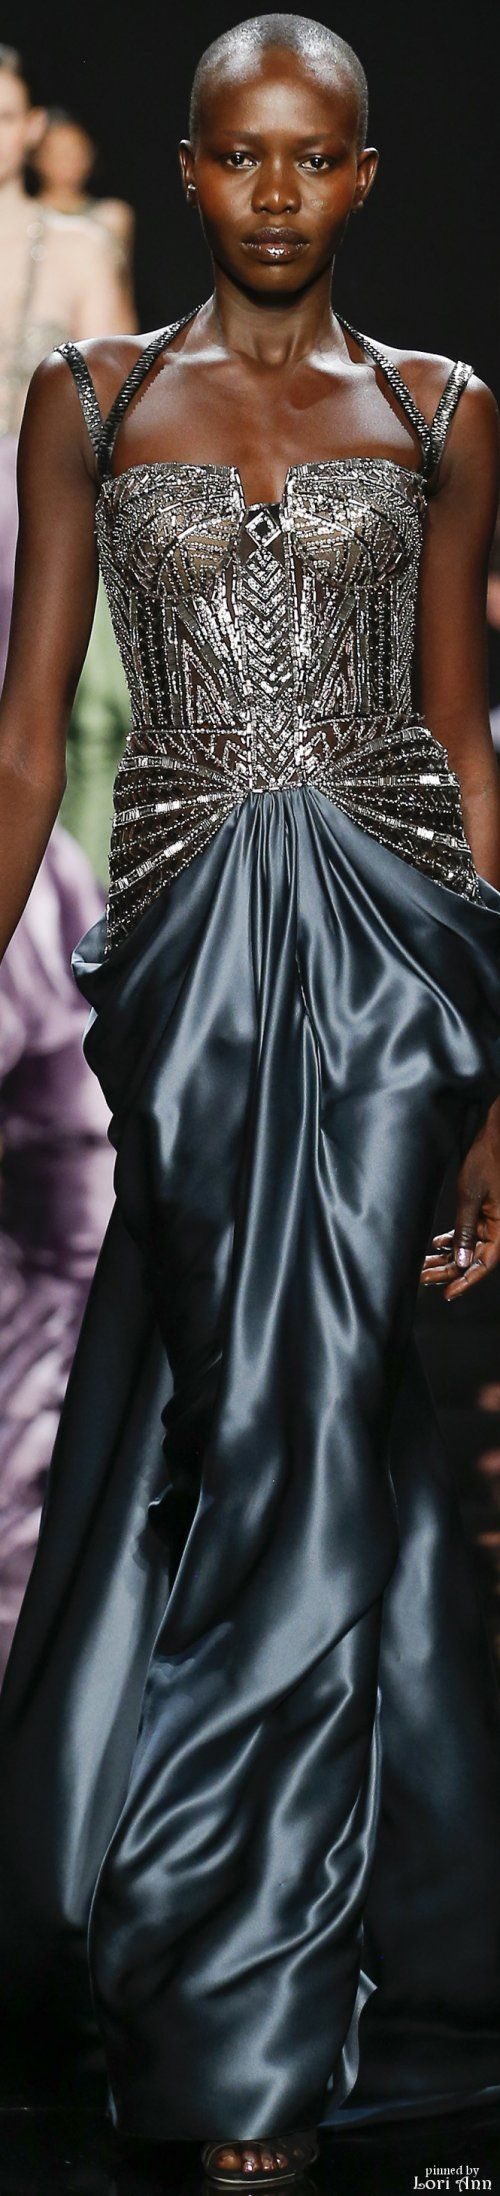 Reem Acra Fall 2016 RTW | #highfashion #inspiration #moderndesign luxury design, luxury, fashion. Visit www.memoir.pt